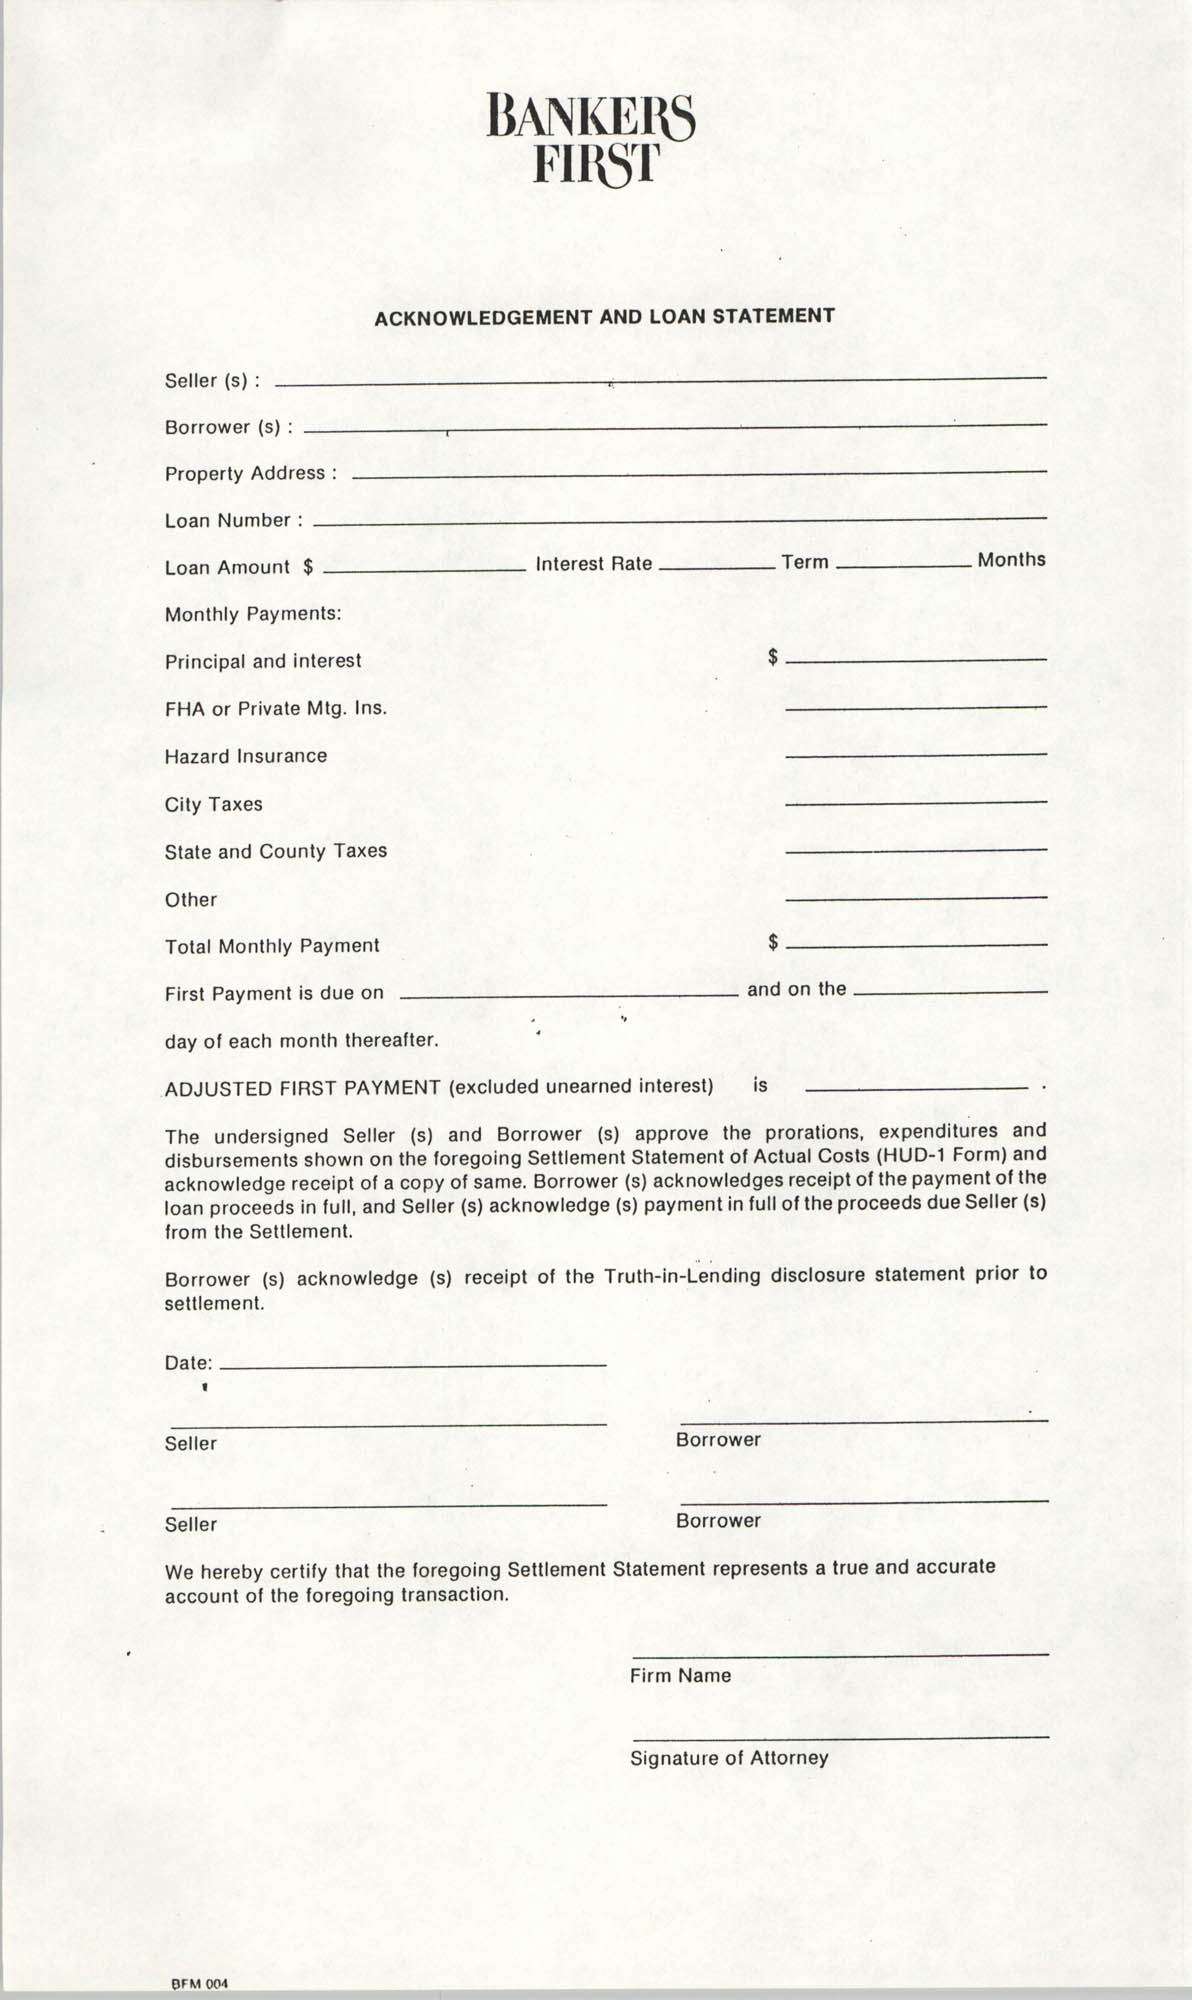 Acknowledgement and Loan Statement, Bankers First Mortgage Corporation/Bankers First Federal Savings & Loan Association